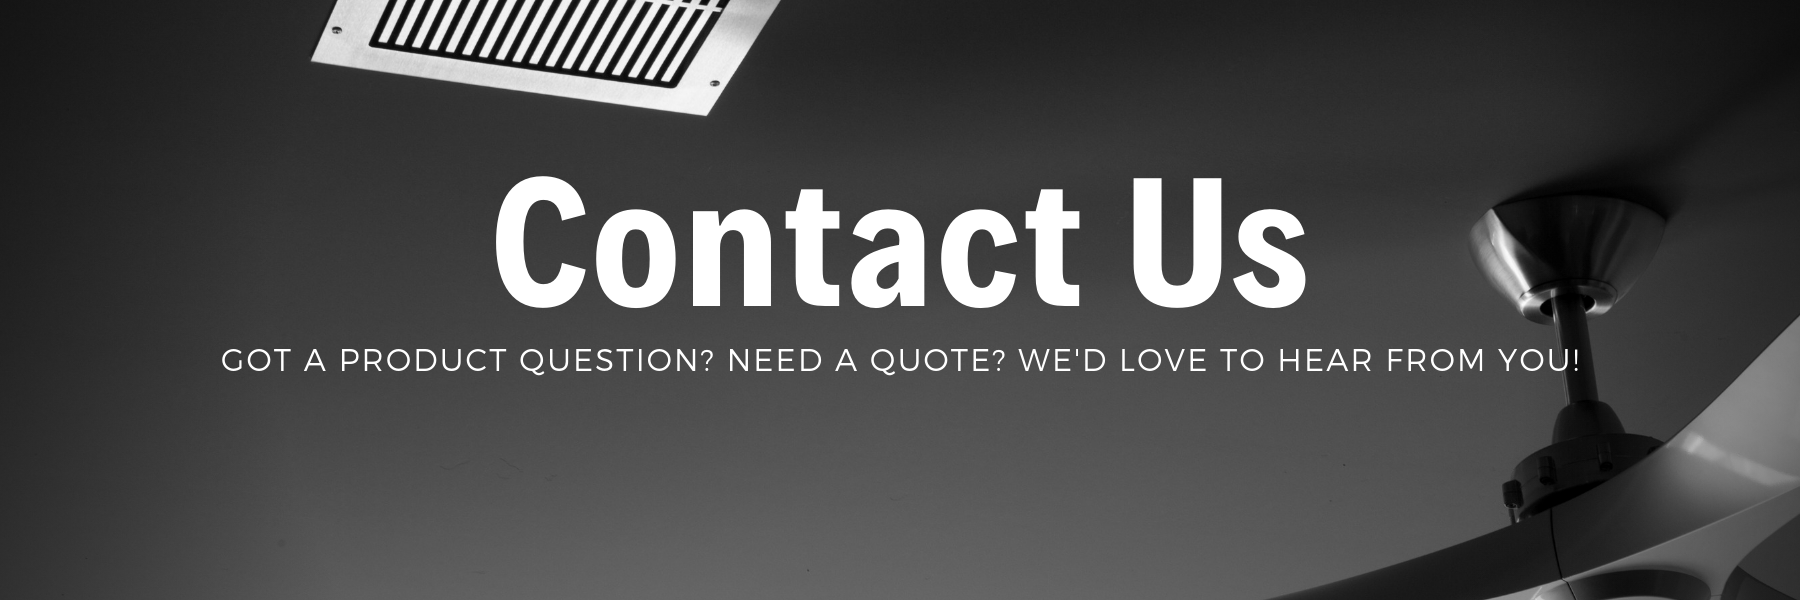 contact-ventandcover.png